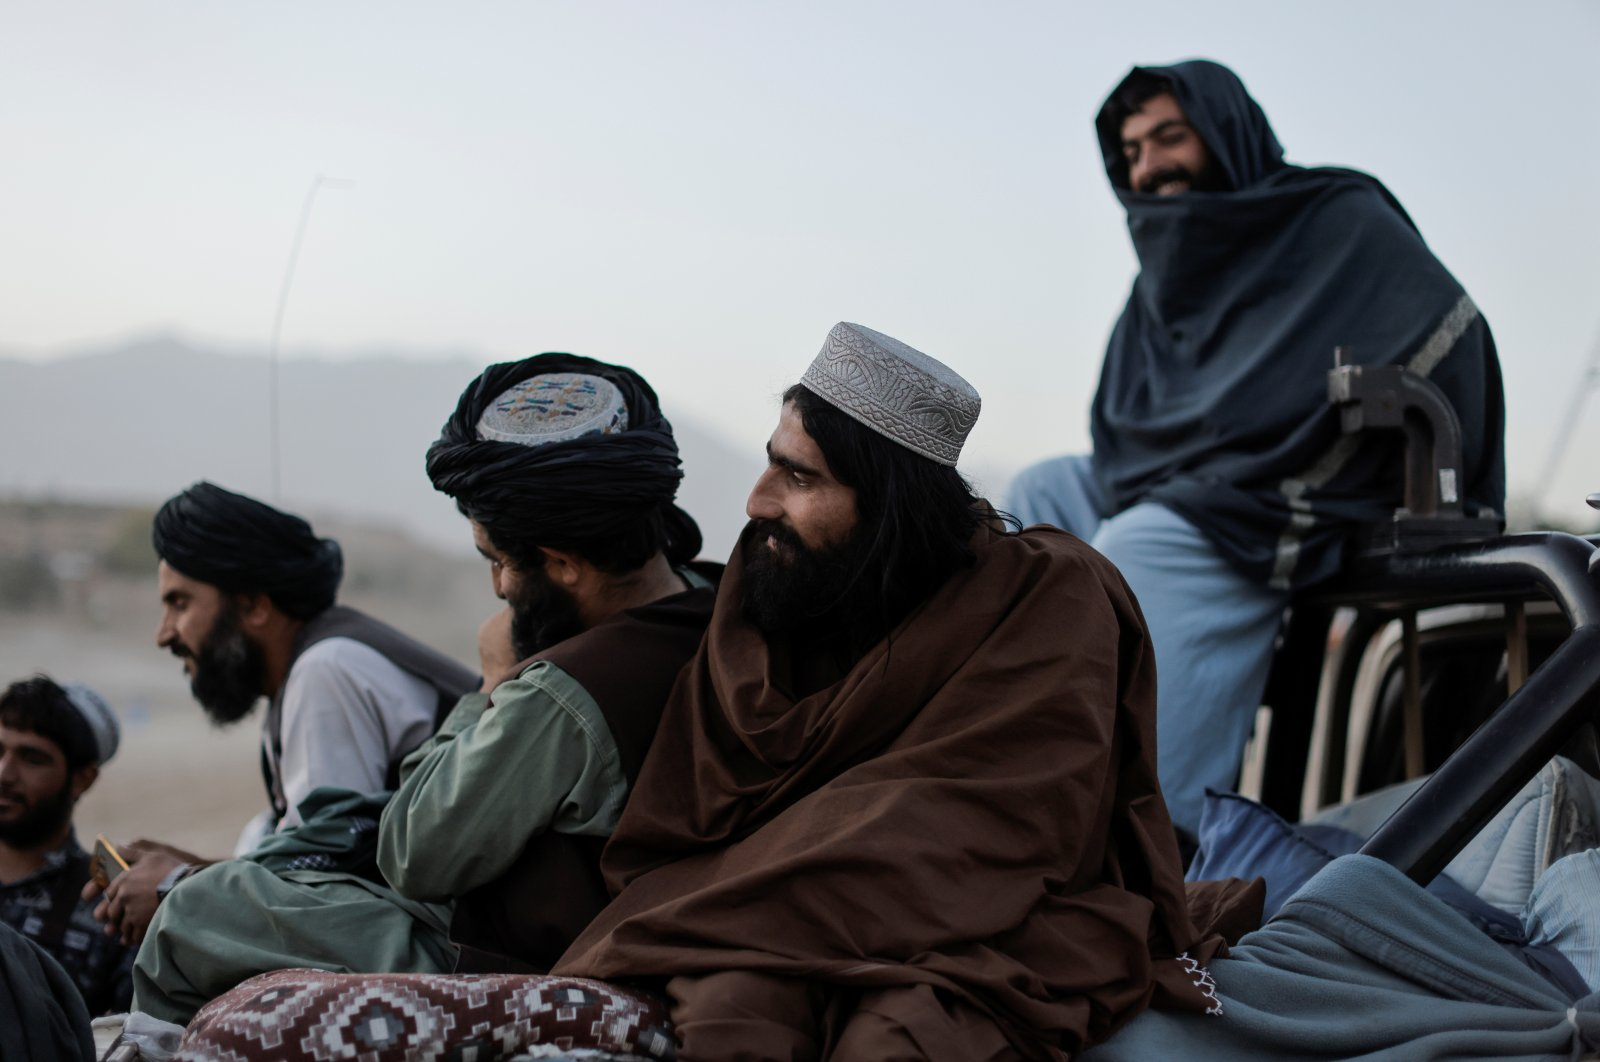 Taliban fighters sit on a vehicle as they take a day off to visit the amusement park at Kabul's Qargha reservoir, at the outskirts of Kabul, Afghanistan October 8, 2021. (Reuters Photo)